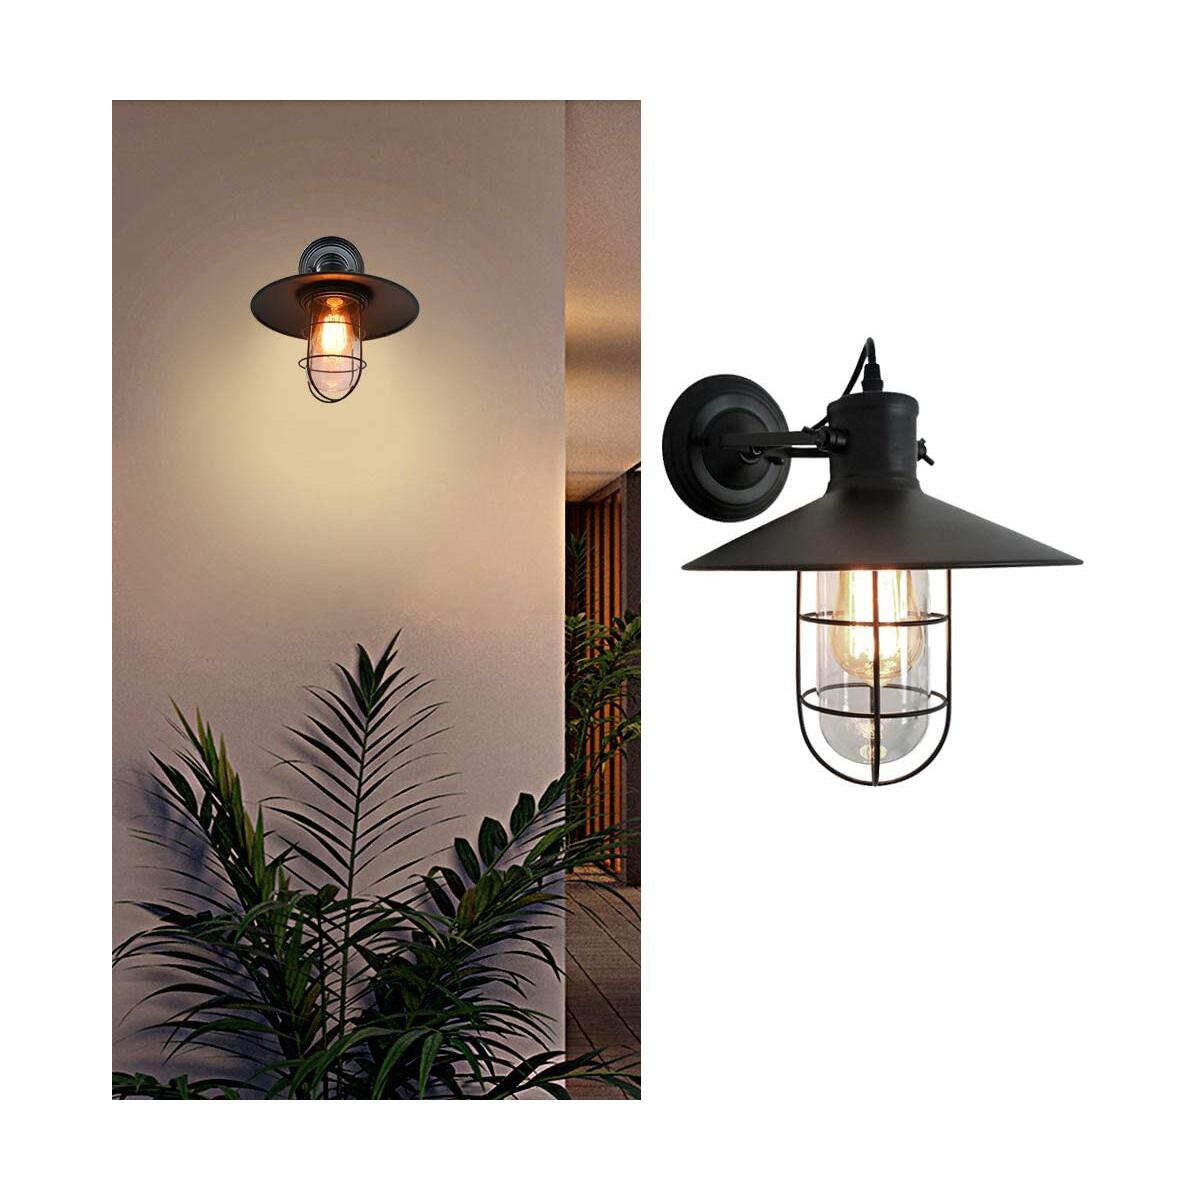 1 Light Industrial Wall Sconce Lighting with Pure Glass Shade, Rustic Wall Sconces Vintage Farmhouse Sconces Wall Lighting Fixtures, Matte Black Mid Century Wall Lamp for Entryway Hallway Porch Garage